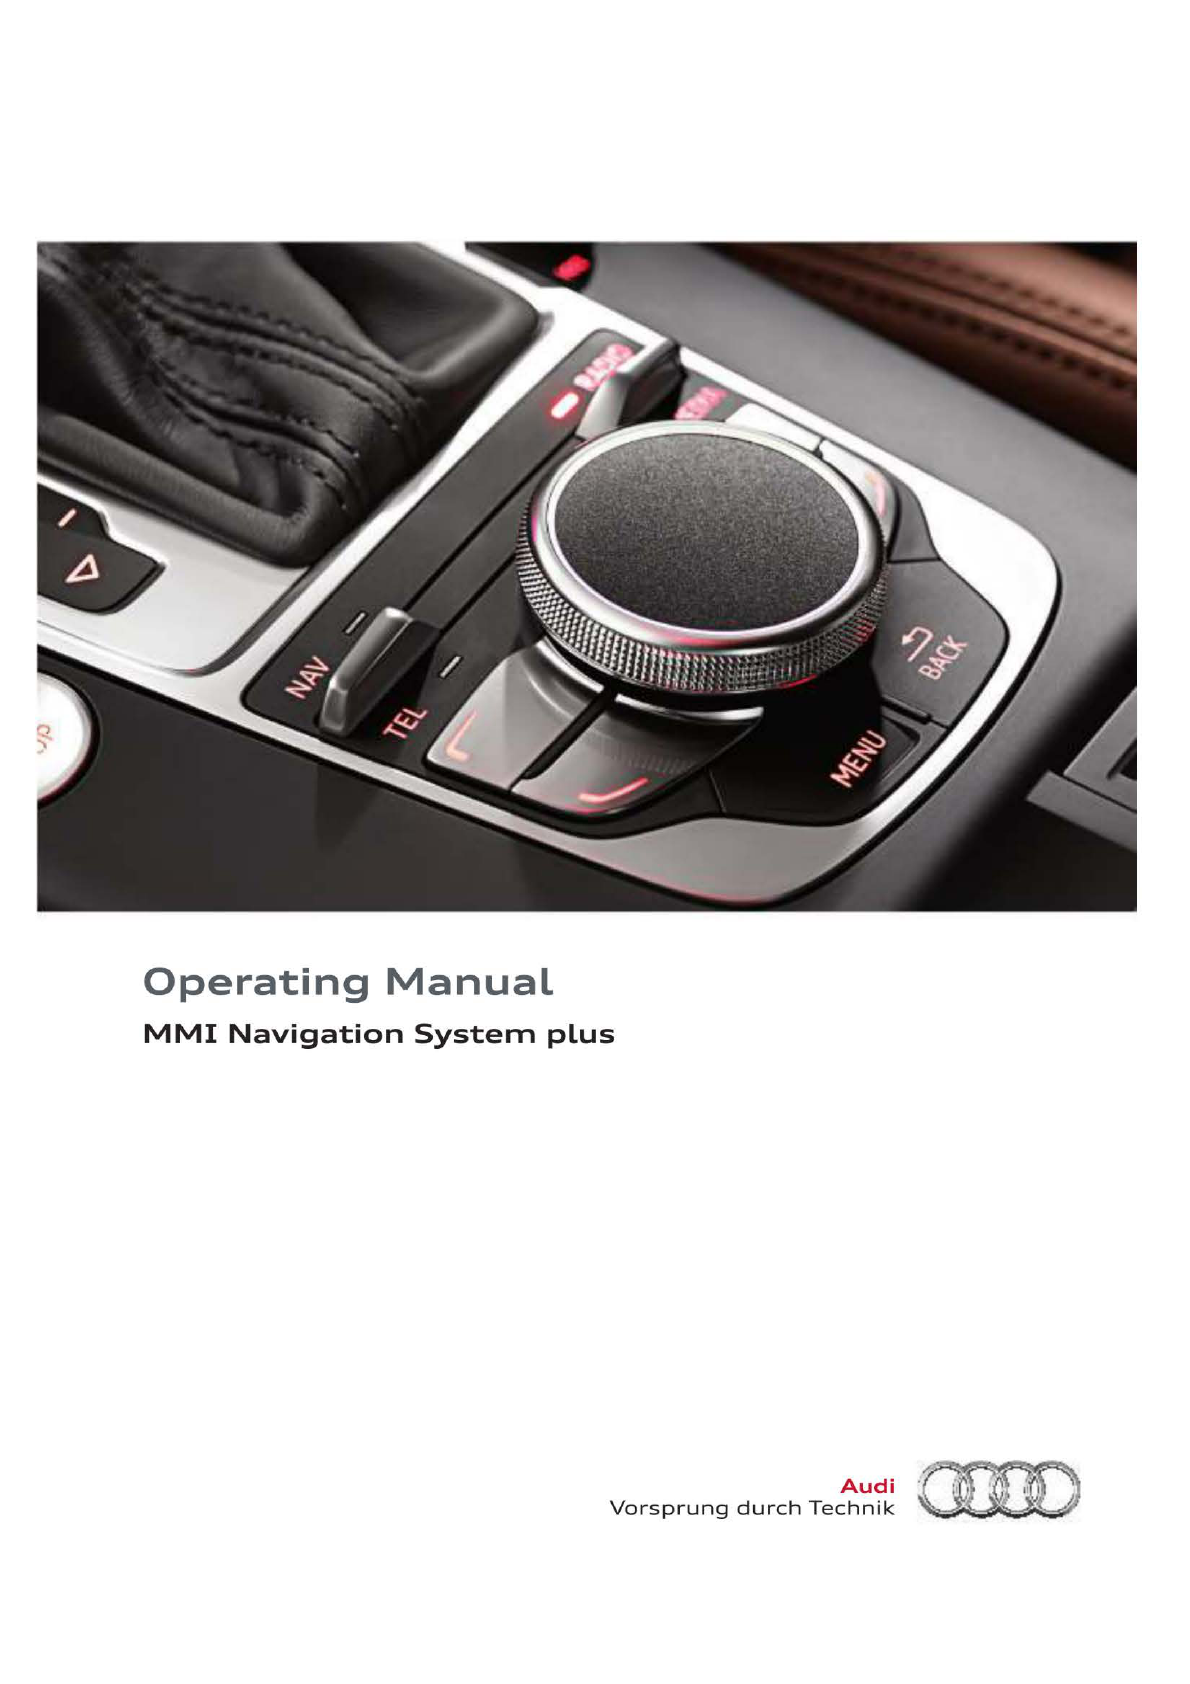 audi a3 2013 misc documents mmi operating manual pdf rh manuals co Audi A8 Navigation Audi A8 Navigation